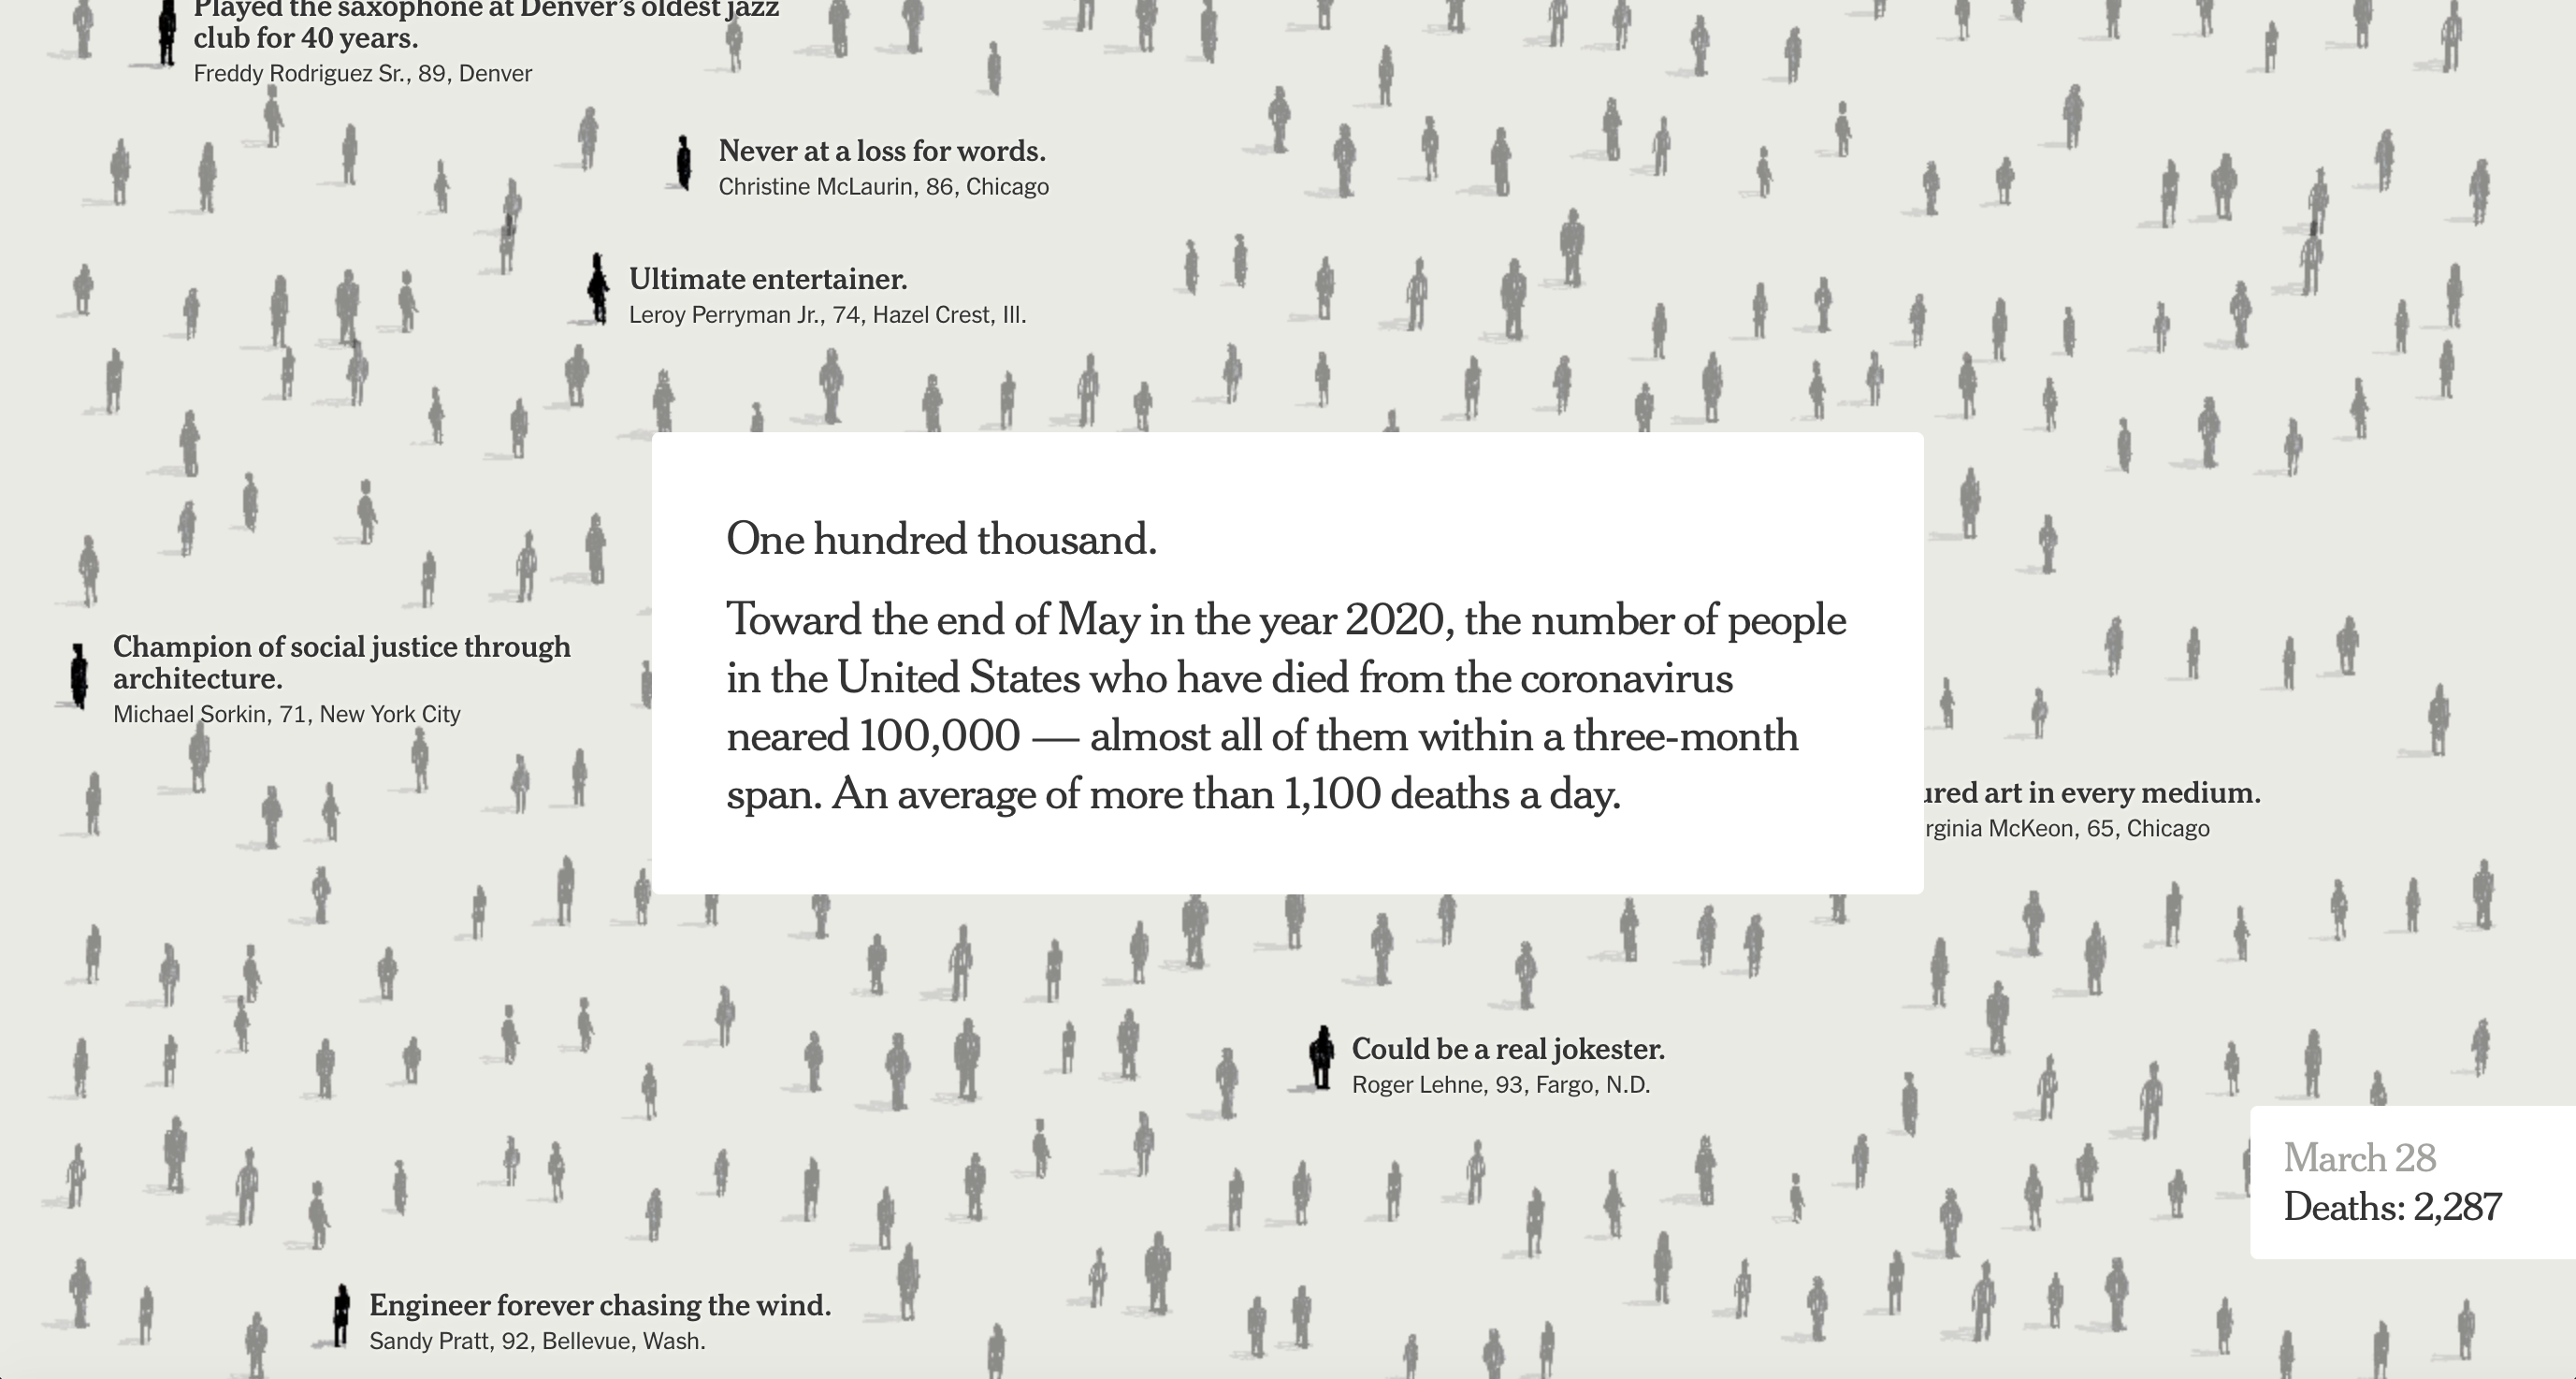 The New York Times Illuminates Lives Lost to COVID-19 in the US